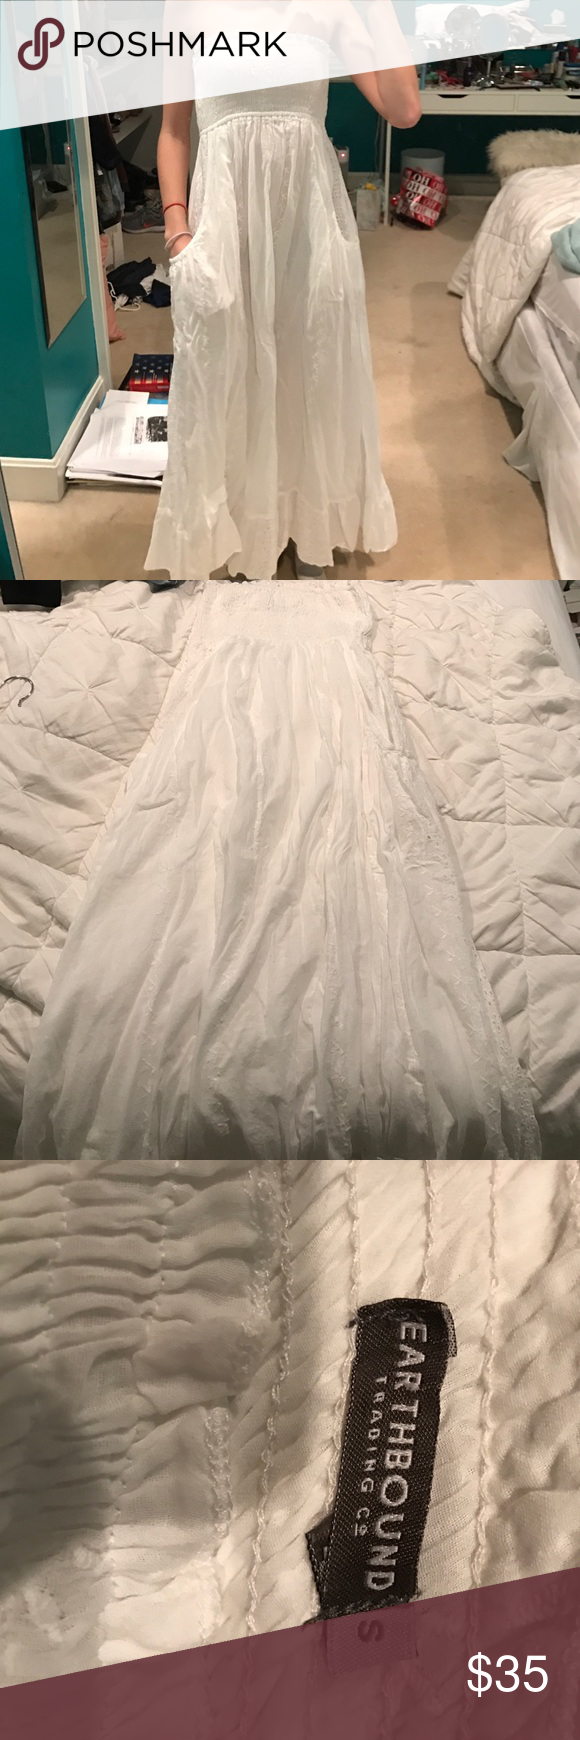 NWOT white lad maxi dress Brand new never been worn white lace maxi dress with pockets and lace trim and elastic at the top in perfect condition earthbound trading co Dresses Maxi